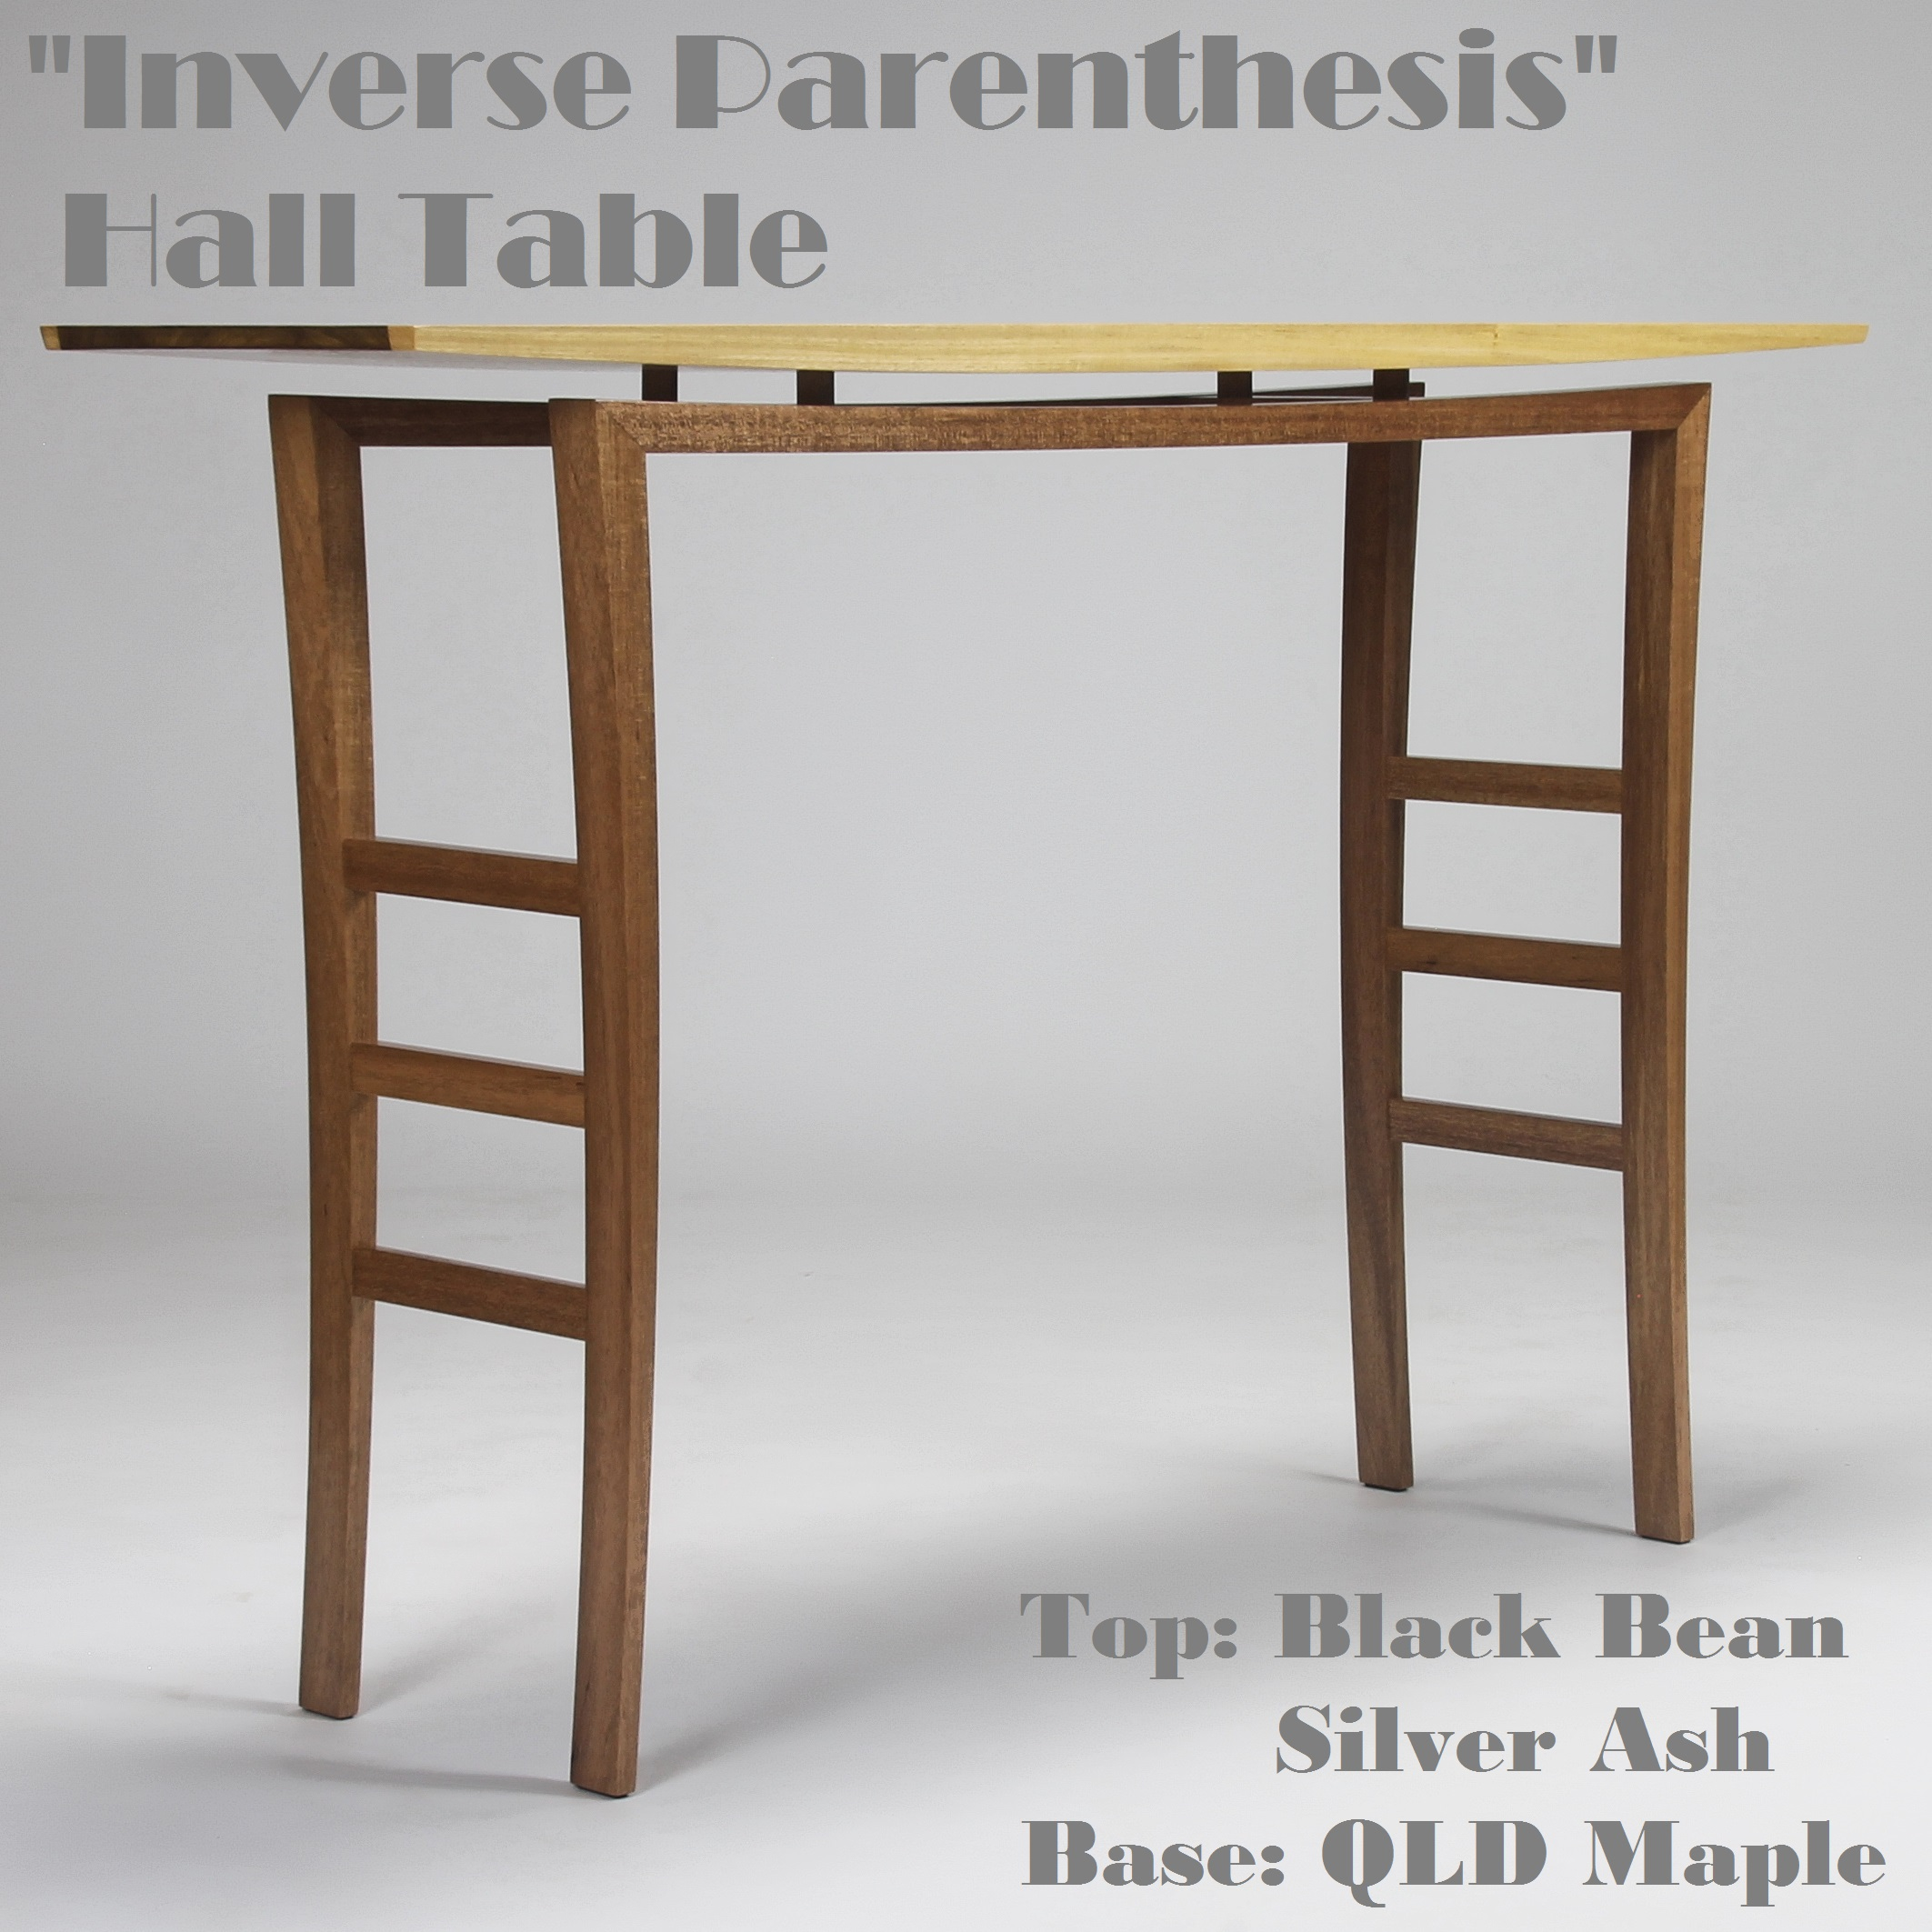 Inverse Parenthesis Hall Table Website 1